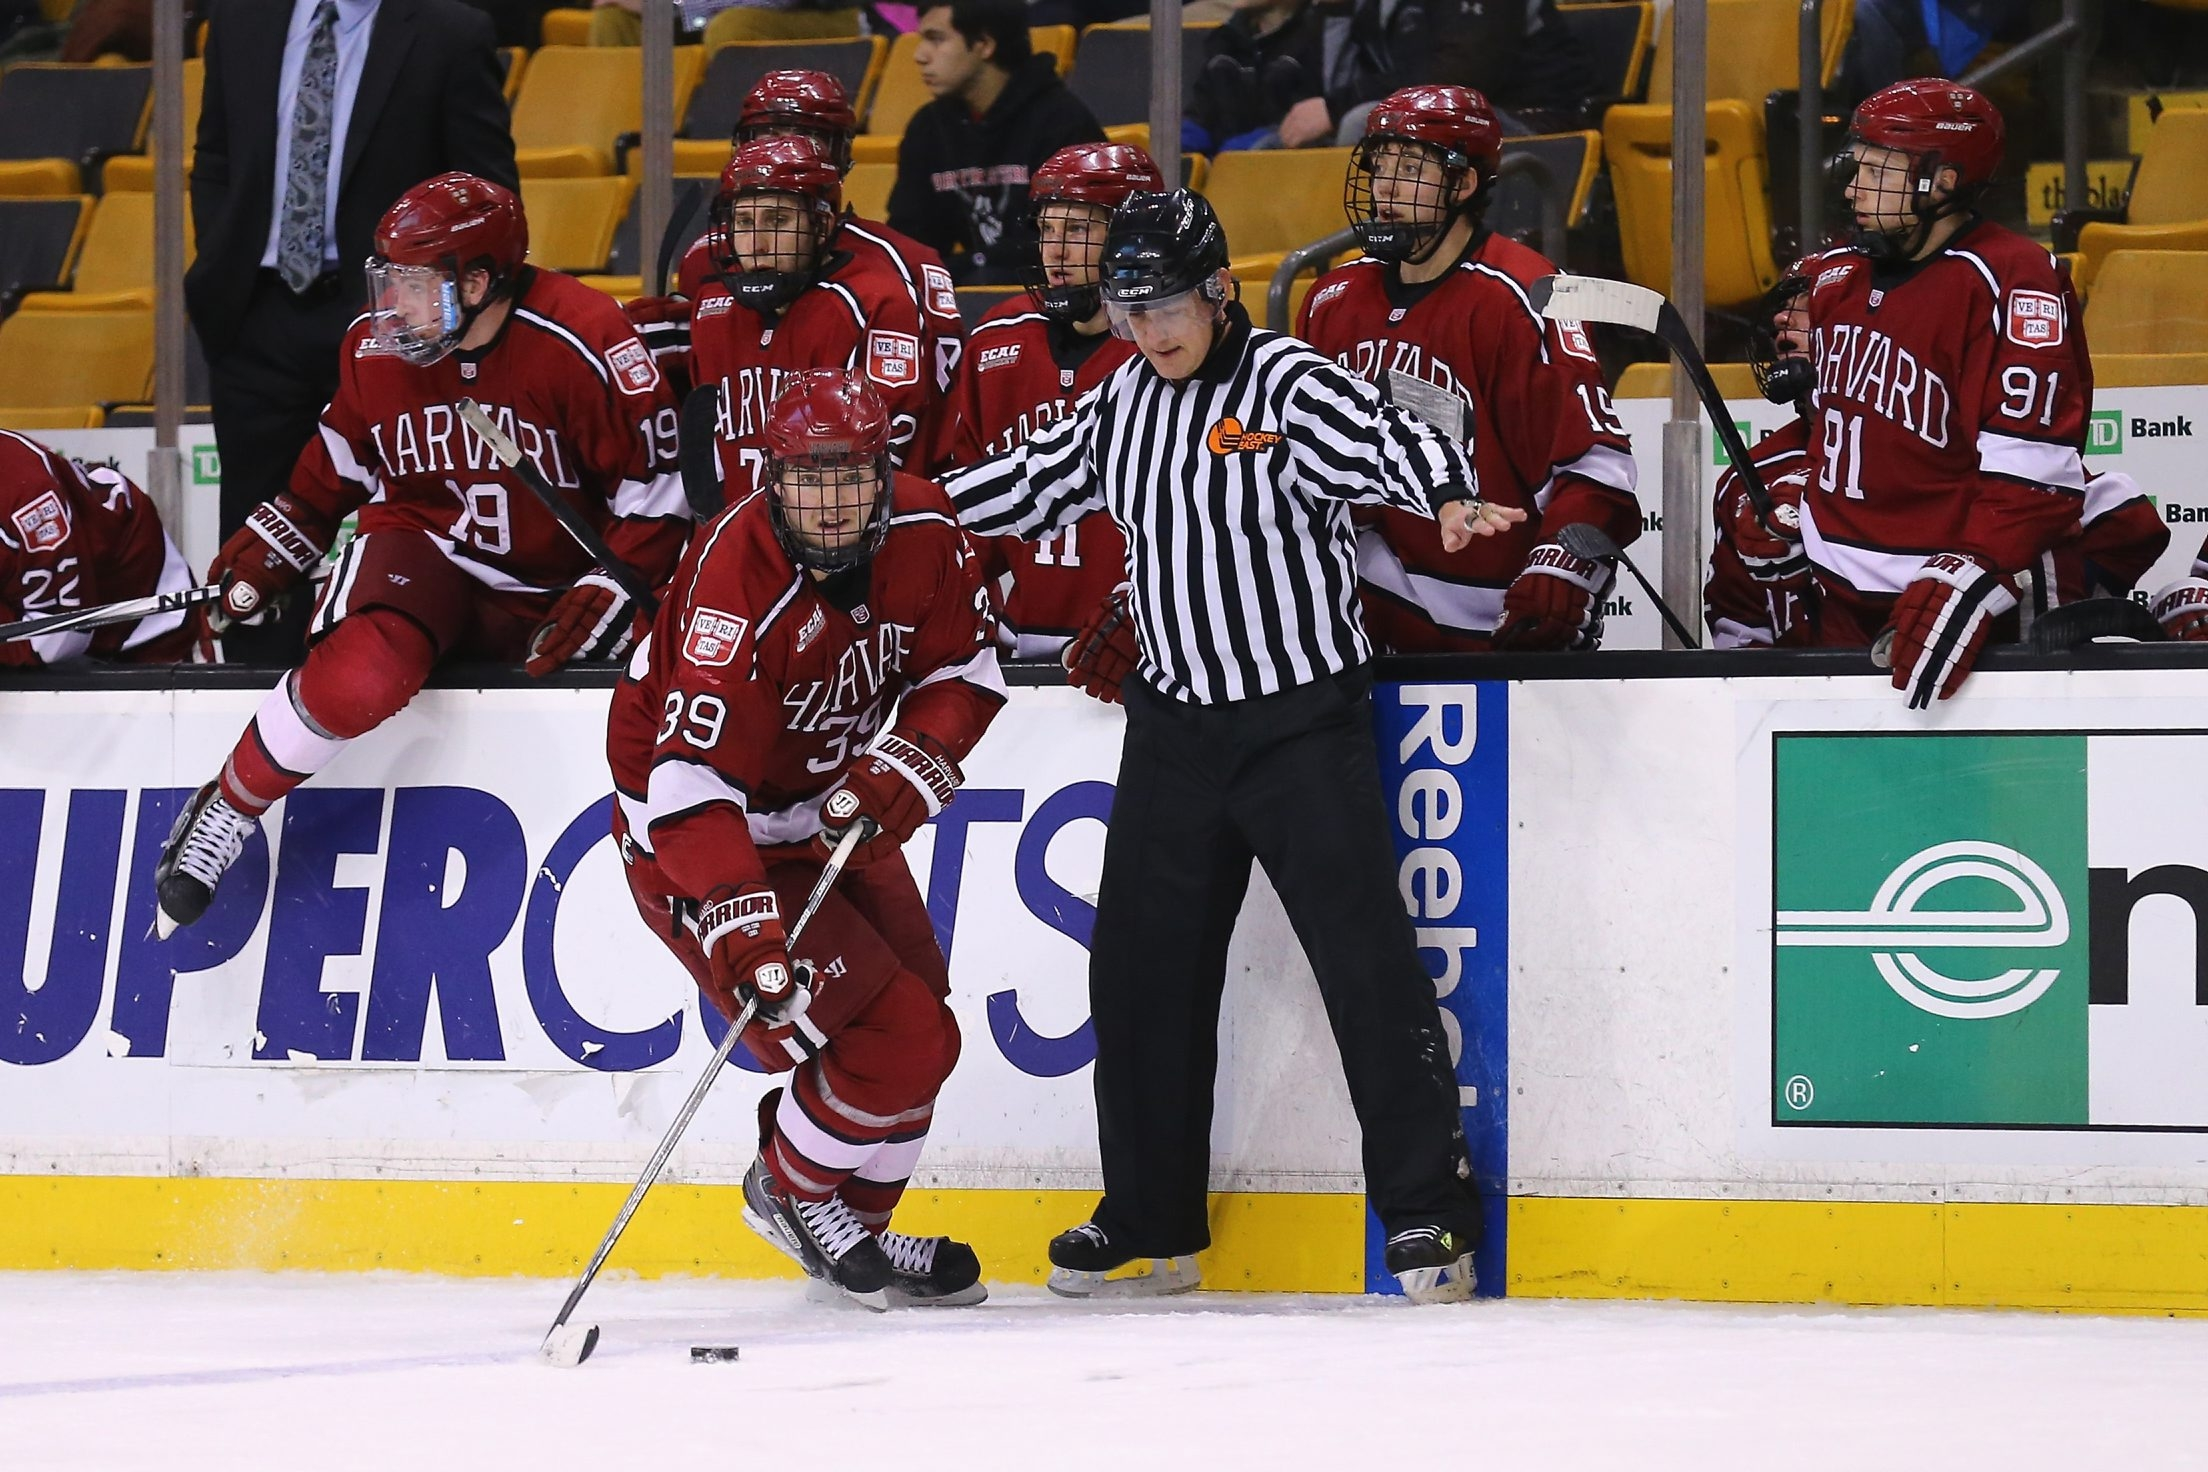 Jimmy Vesey was the Hobey Baker award winner at Harvard.